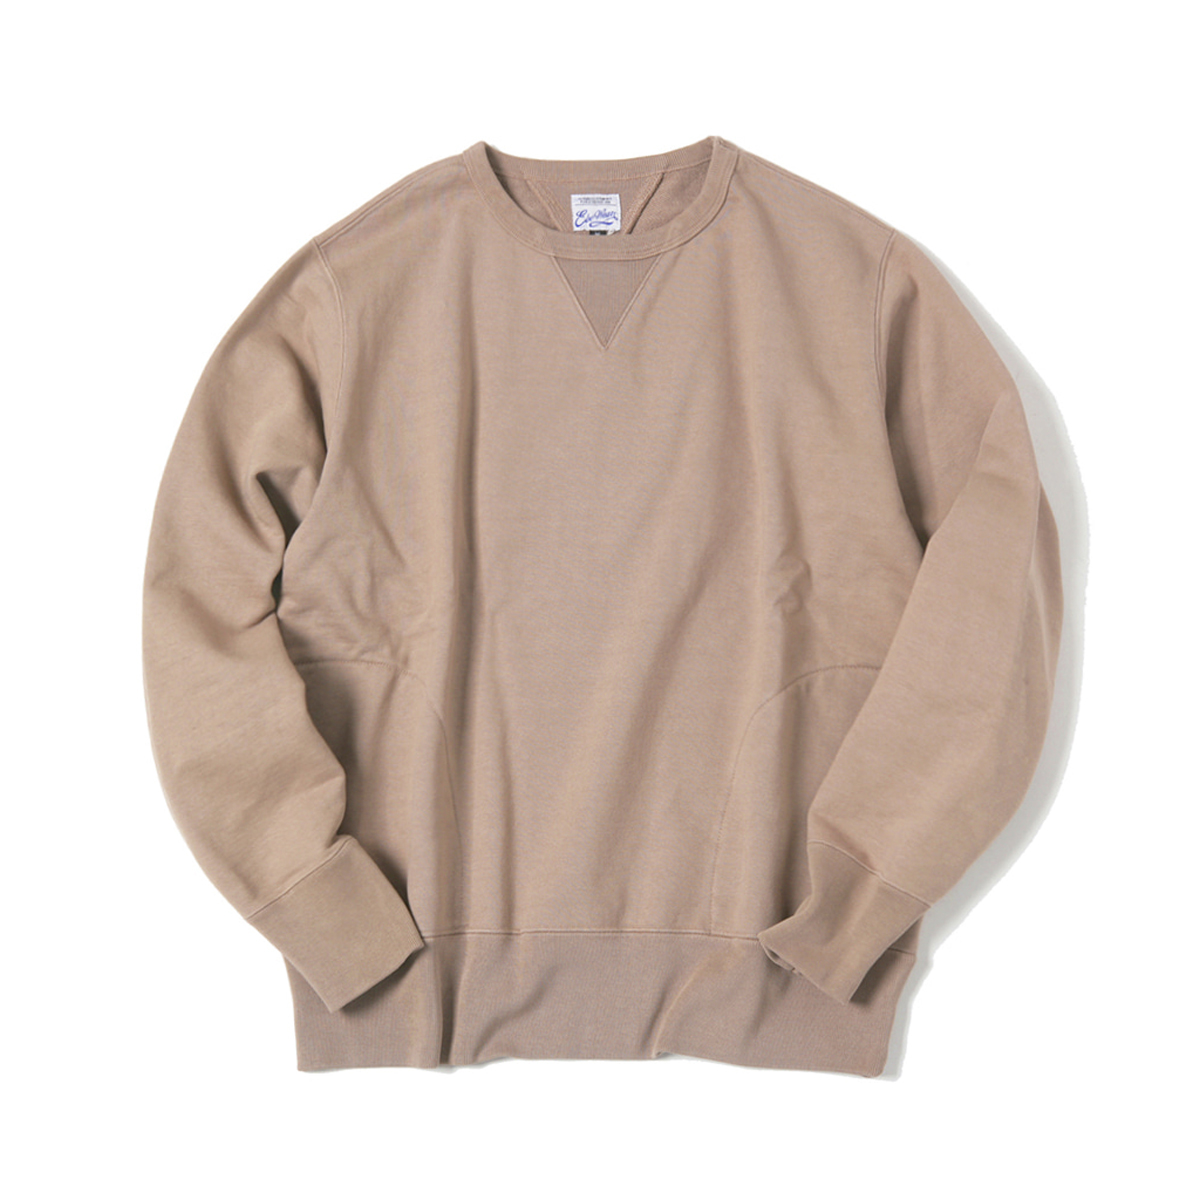 [ELSEWEAR] WHY NOT SWEATSHIRTS 'LATTE'